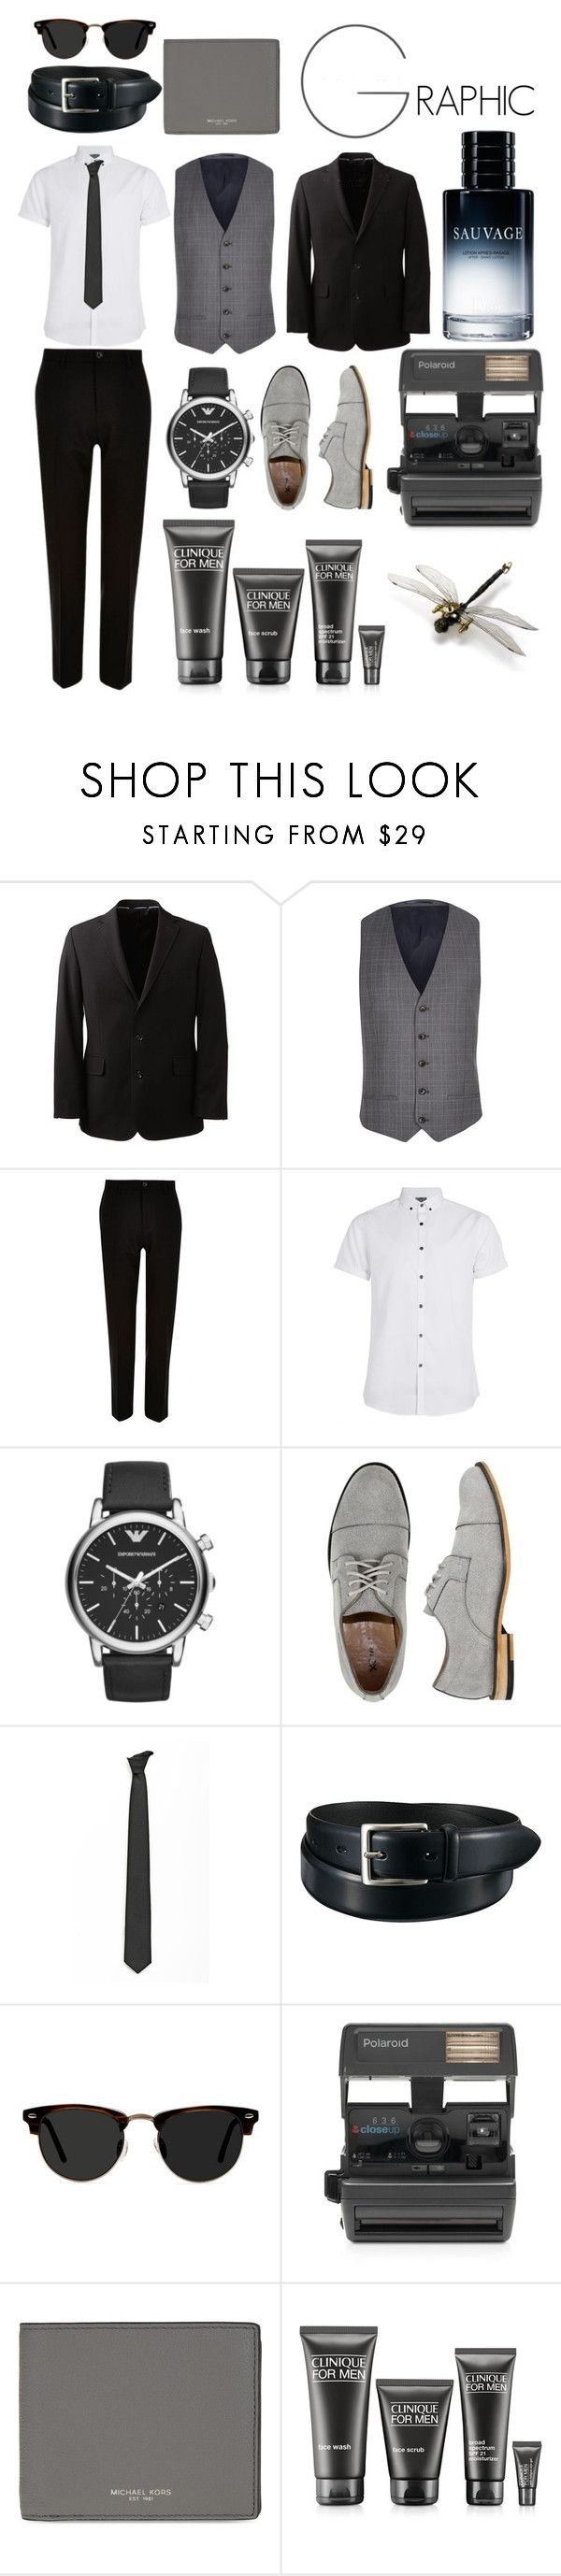 """""""Smart dress code #1"""" by oliviaa-maay ❤ liked on Polyvore featuring Lands' End, River Island, Topman, Emporio Armani, X-Ray, Lardini, Uniqlo, Ace, Impossible and Michael Kors"""